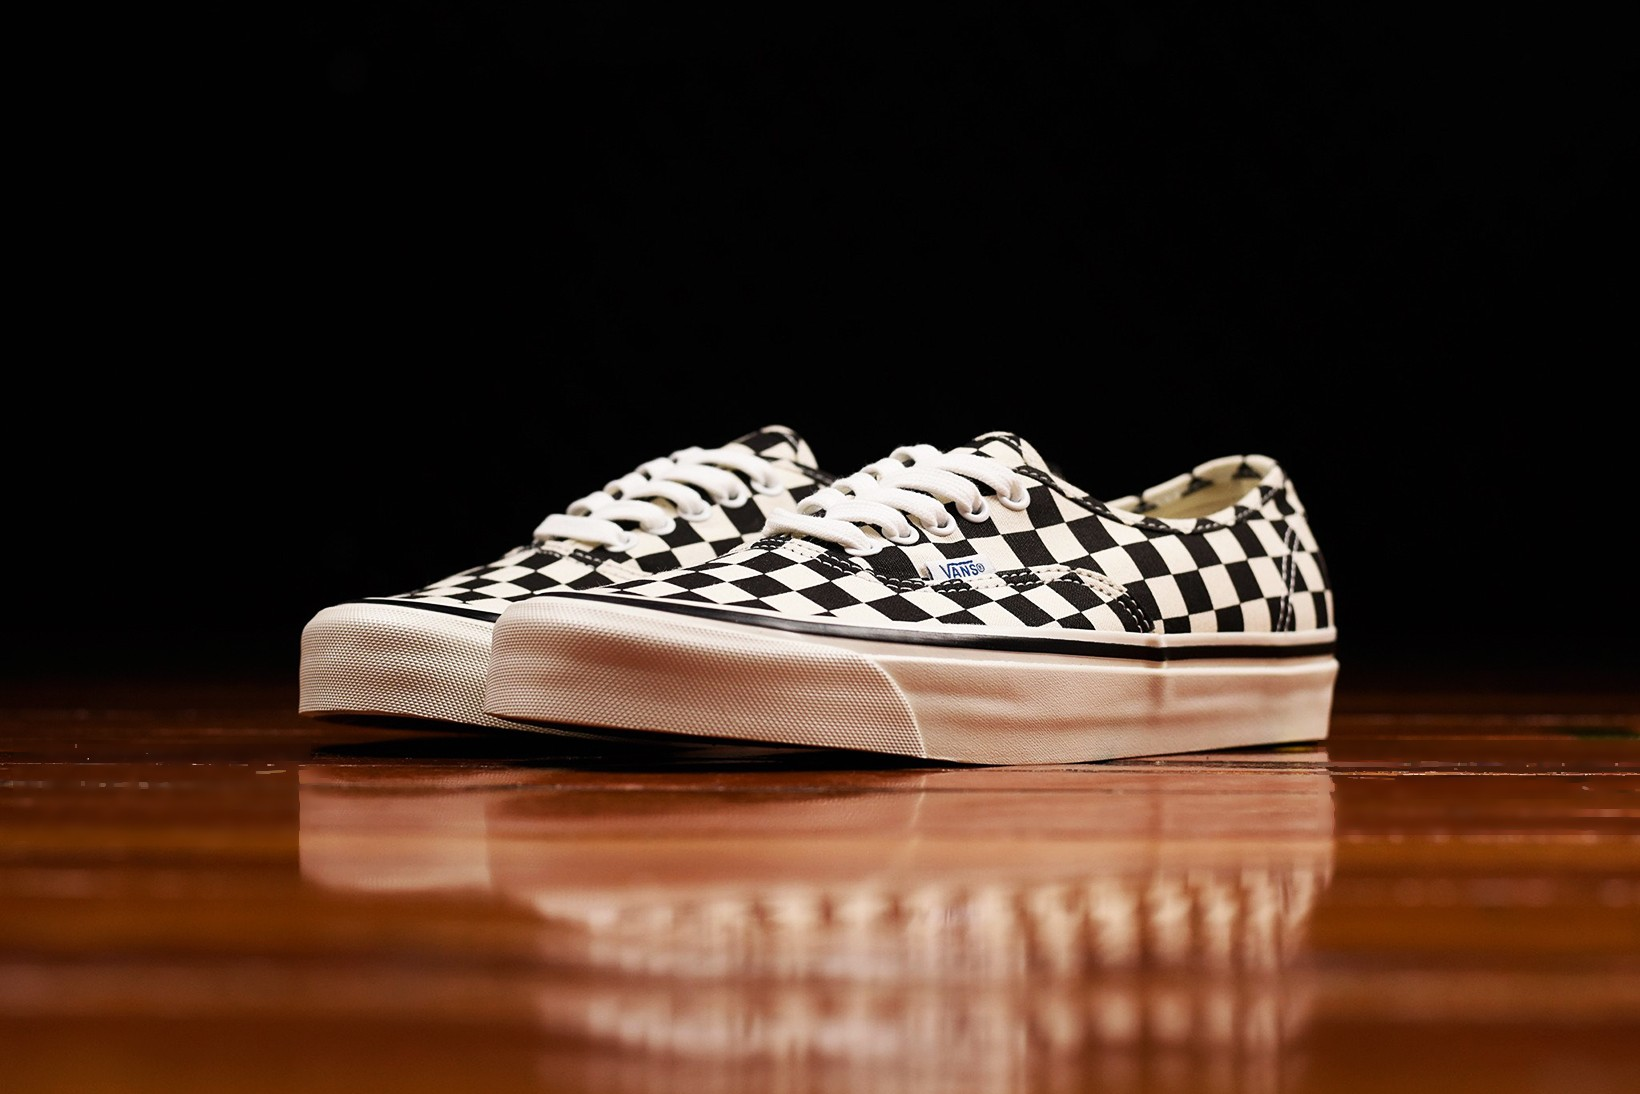 Vans Checkerboard Authentic 44 DX and